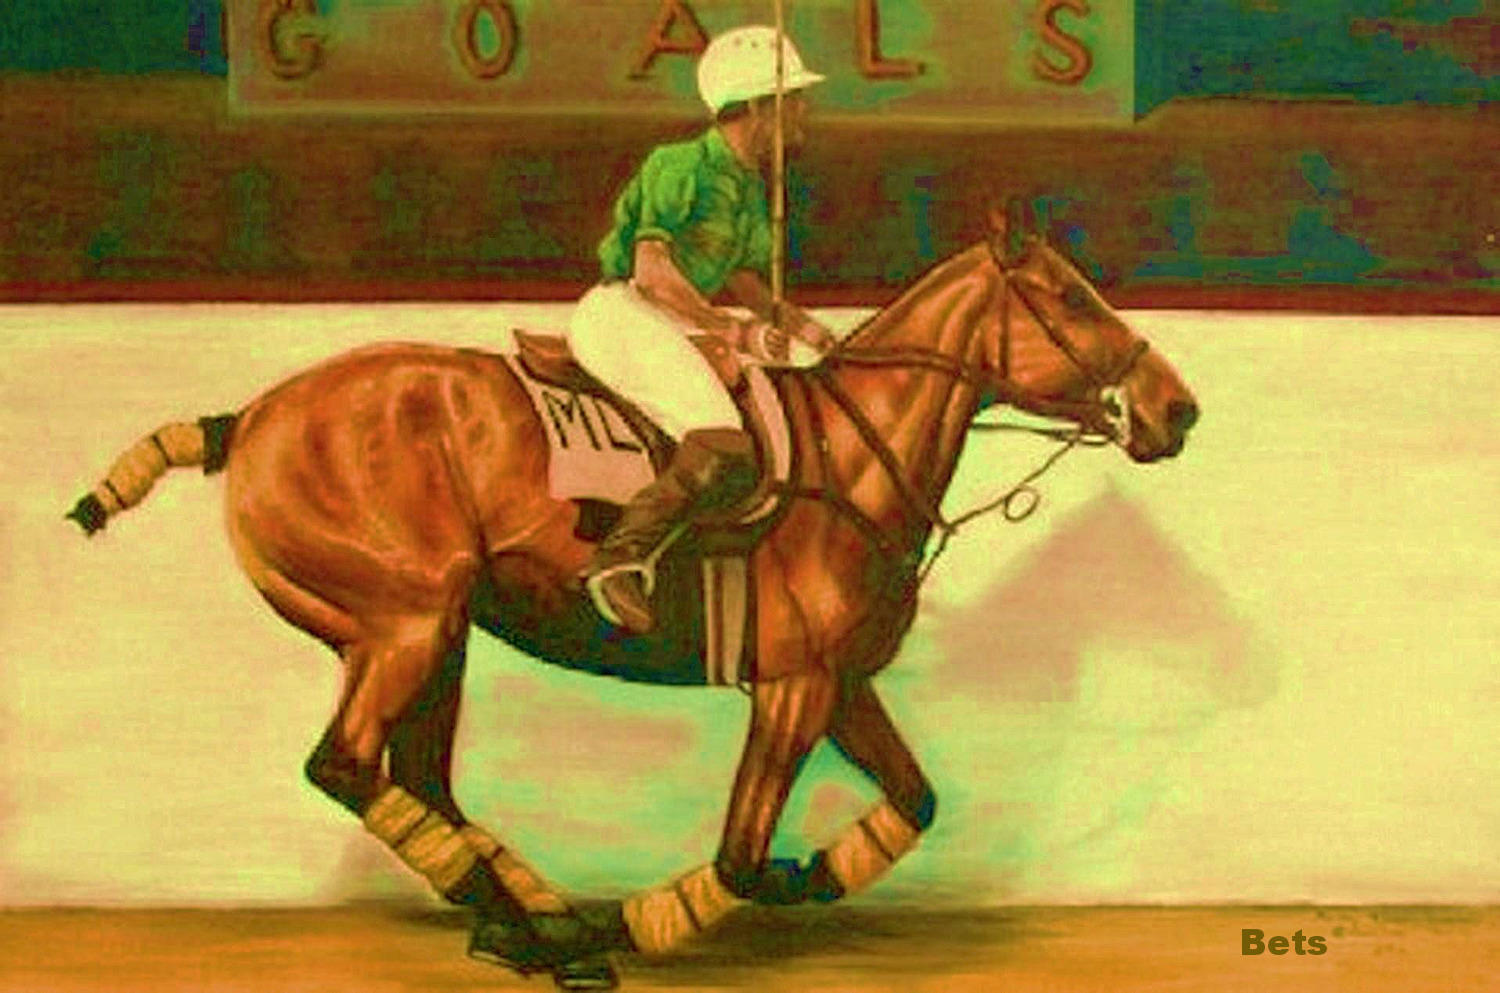 Giclee HORSE HORSE Giclee PRINT POLO Art WARMING UP artist BETS 6 COLORS print Größe 12 X 16 c71279